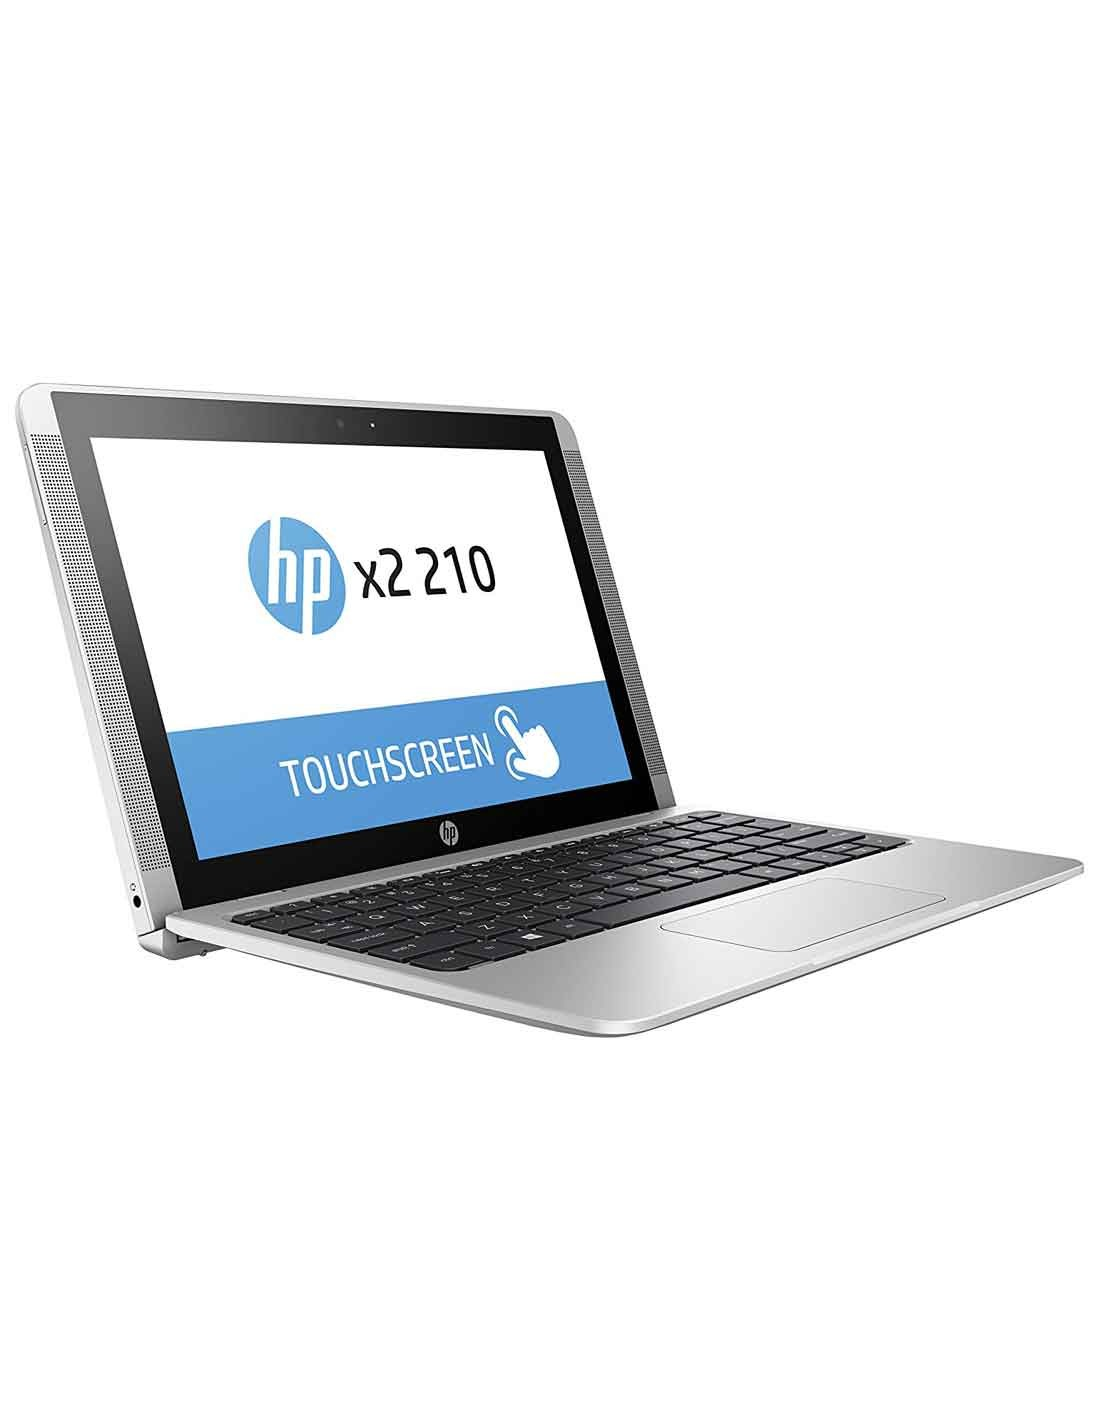 HP x2 210 G2 Detachable 4GB at the cheapest price and fast free delivery in Dubai